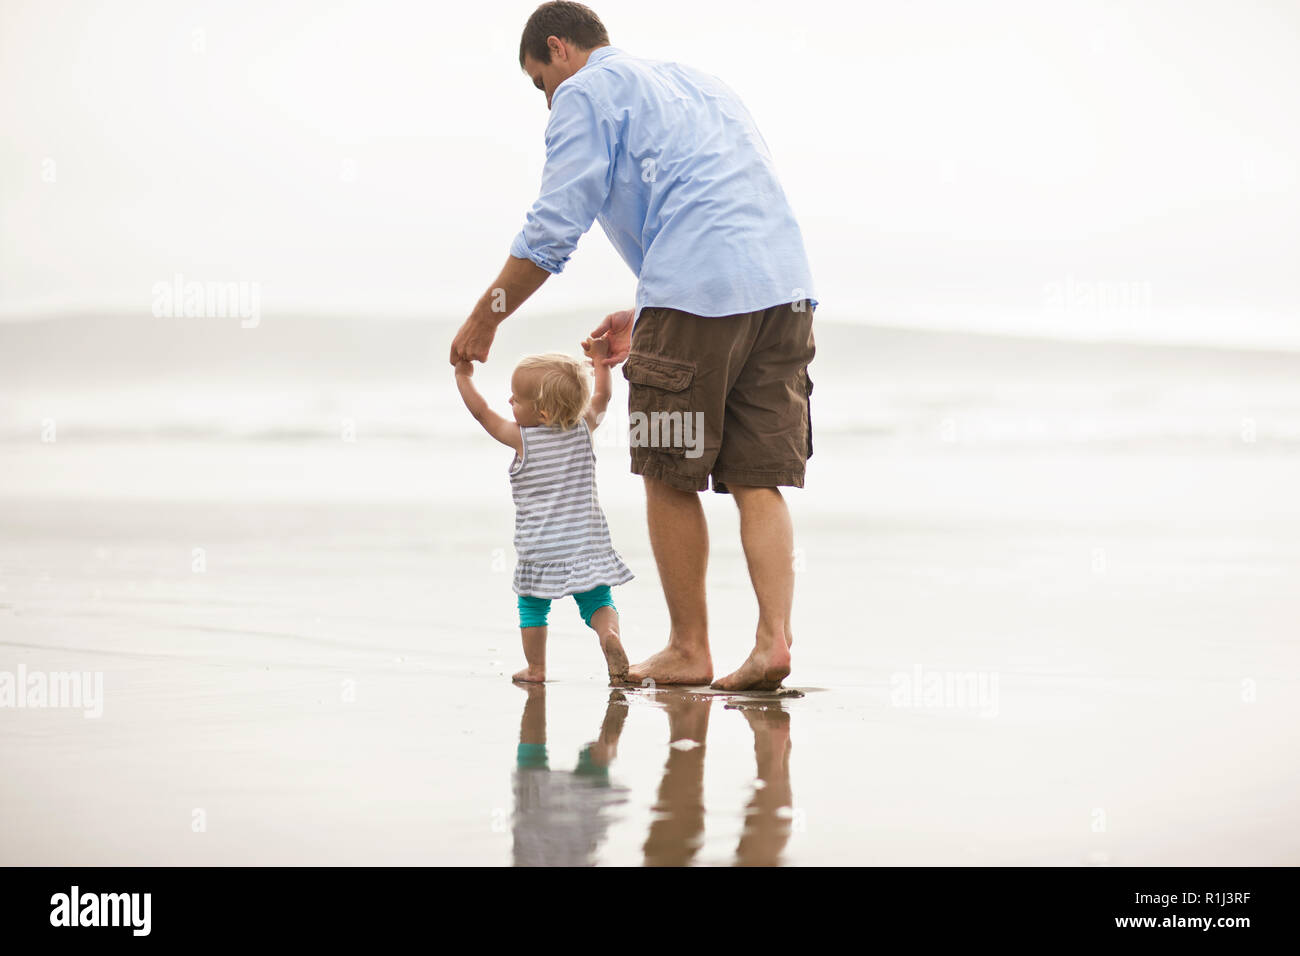 Father helping his baby daughter take her first steps on a beach. Stock Photo